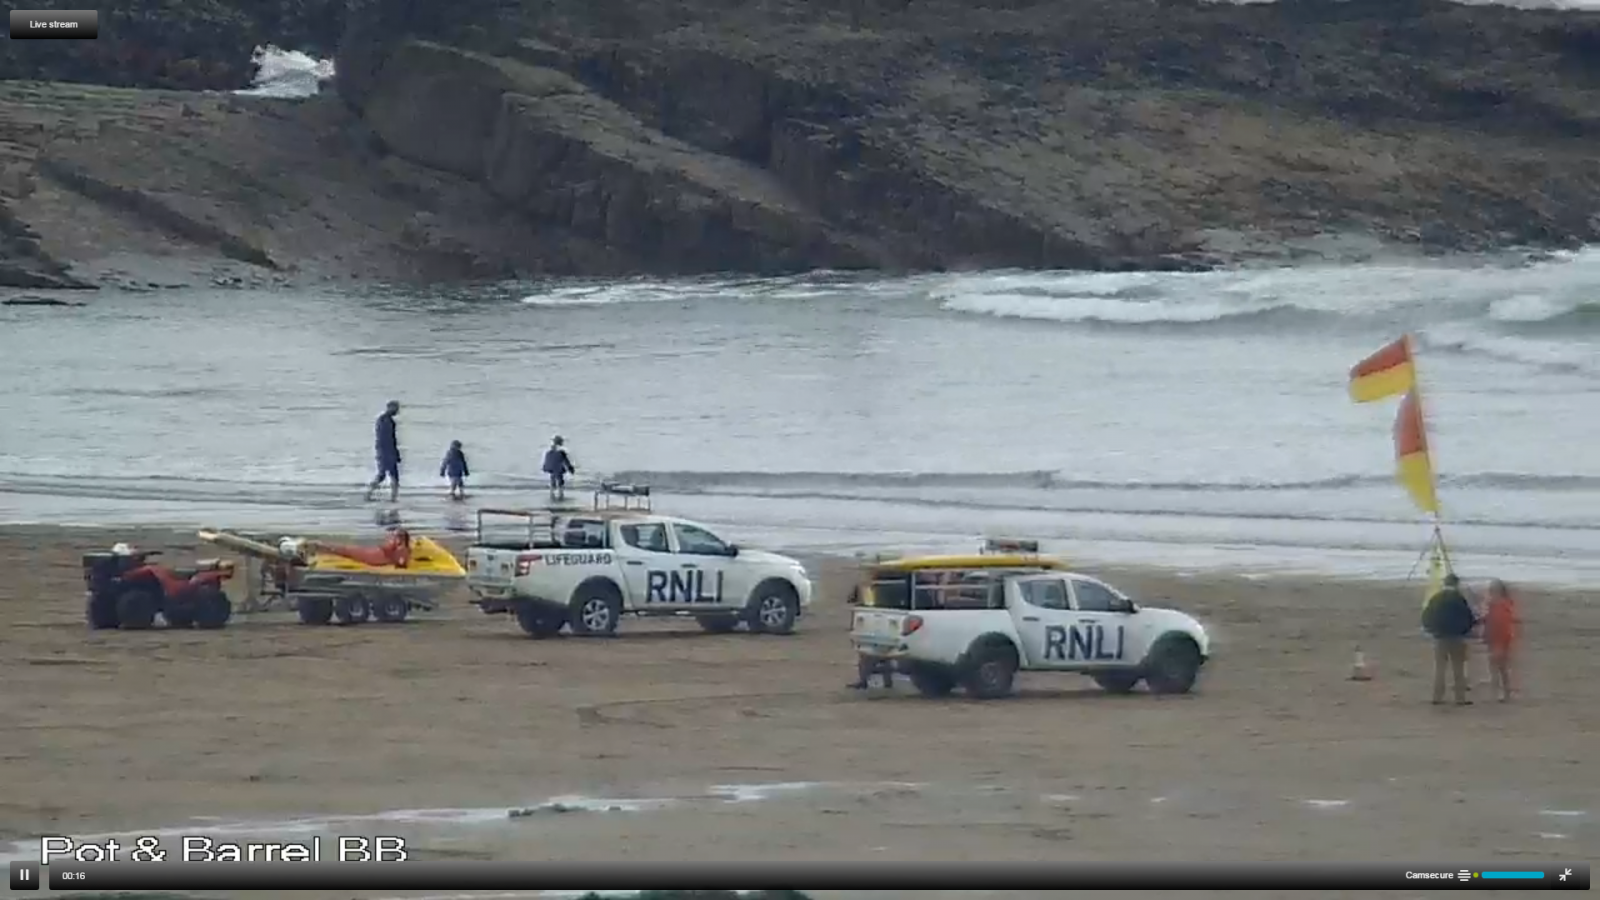 image-2 RNLI on duty at Summerleaze Beach Bude, Cornwall.